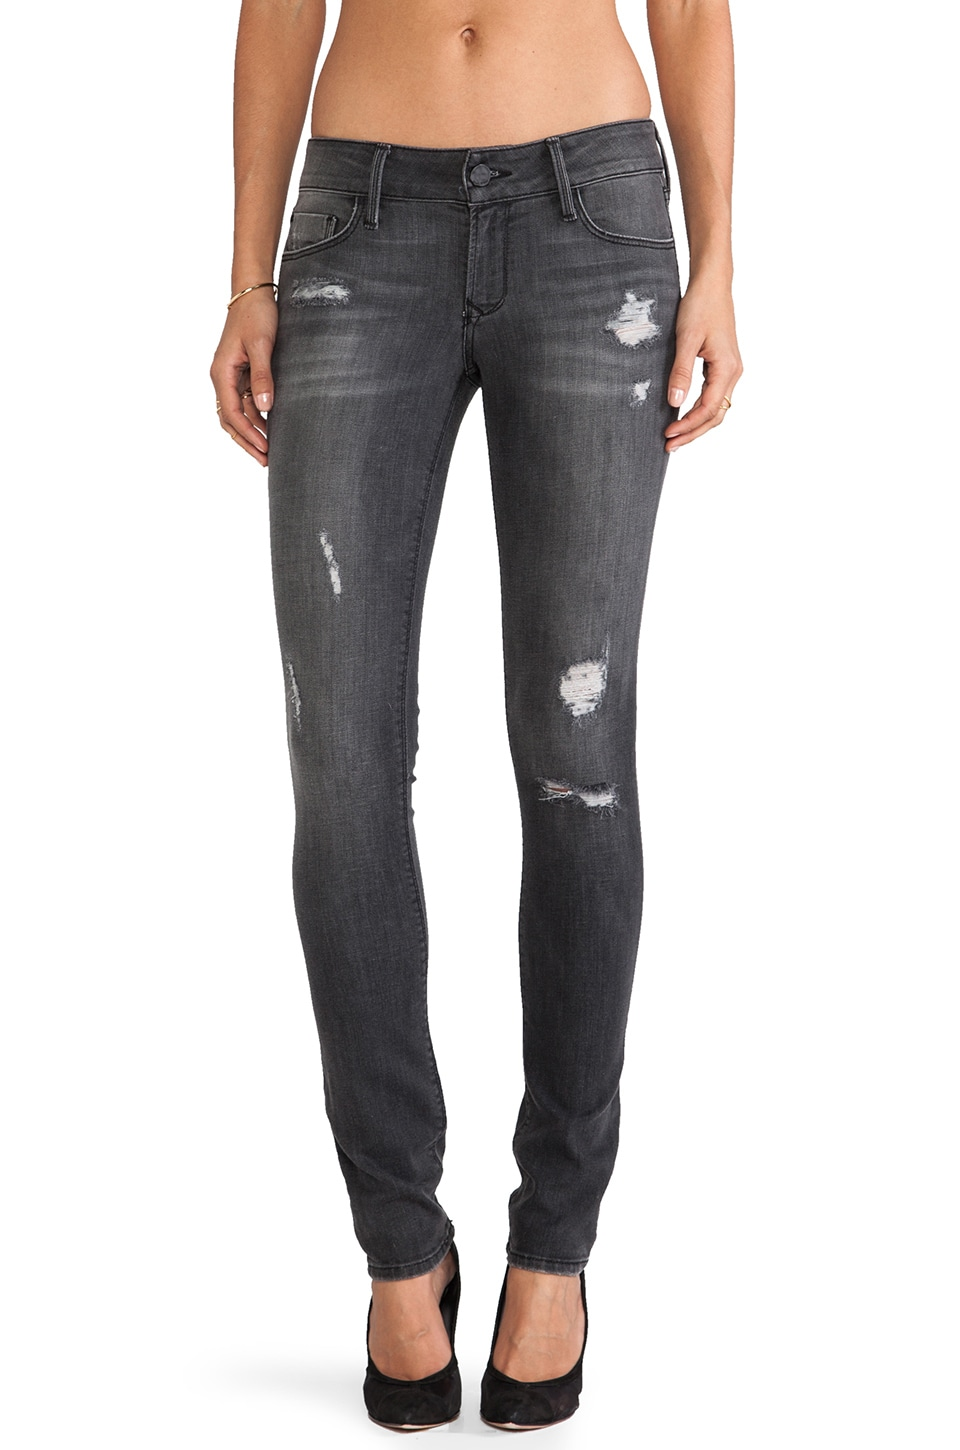 Black Orchid Skinny Leg in Columbite